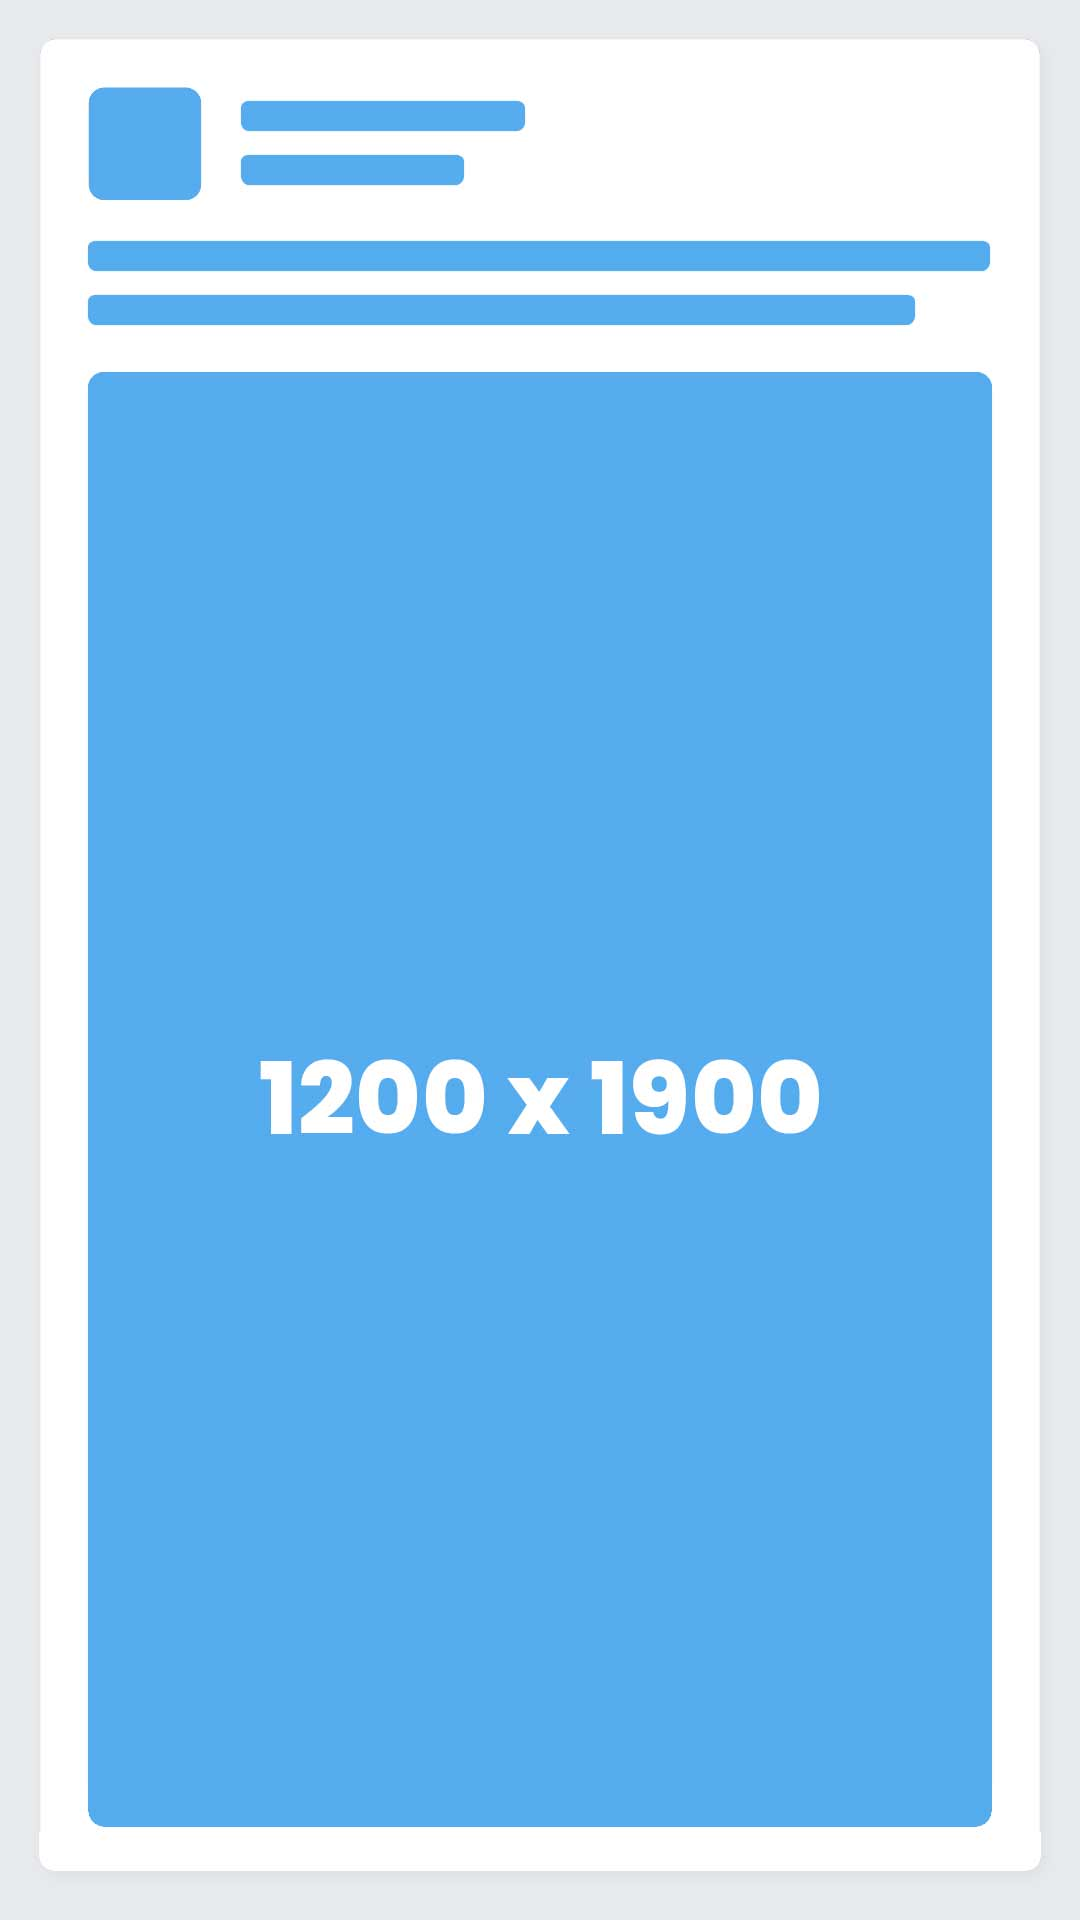 Twitter Vertical Video Ad Size / Dimensions